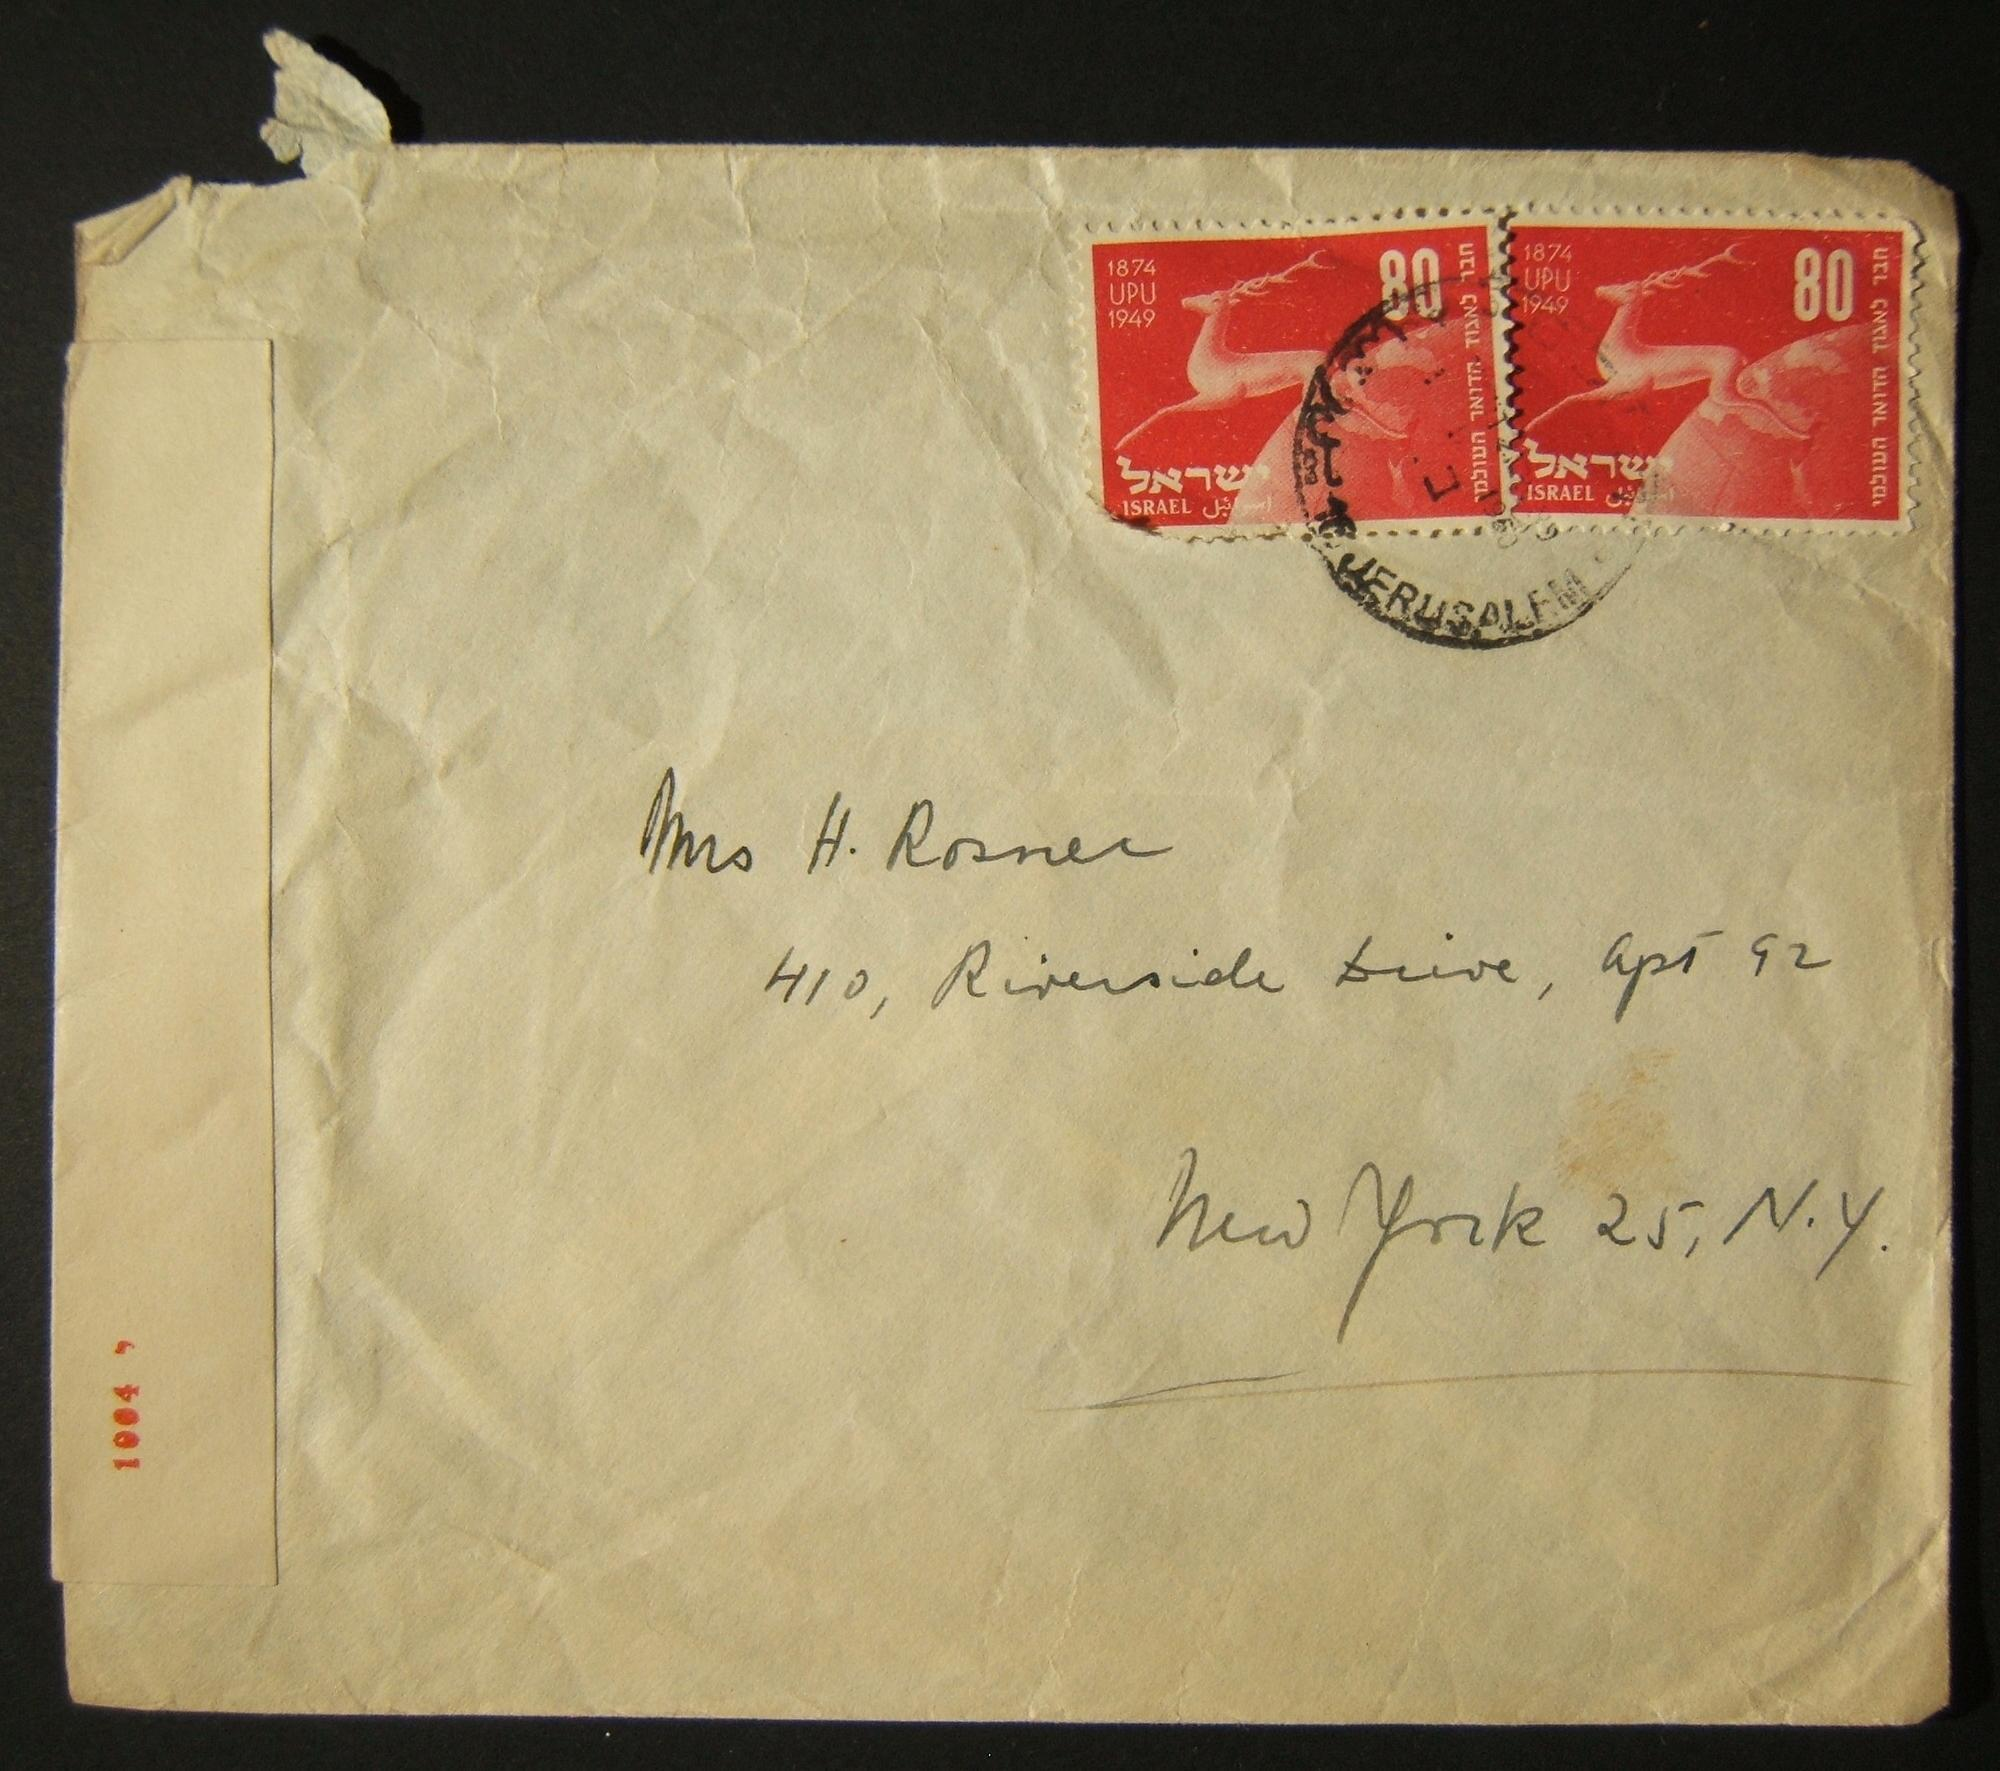 1950 UPU / rates & routes: 3-9-1950 airmail cover ex JERUSALEM to NYC franked 160pr double rate at the FA-2a rate for additional weight، using 2x 80pr (Ba28) tie by single strike